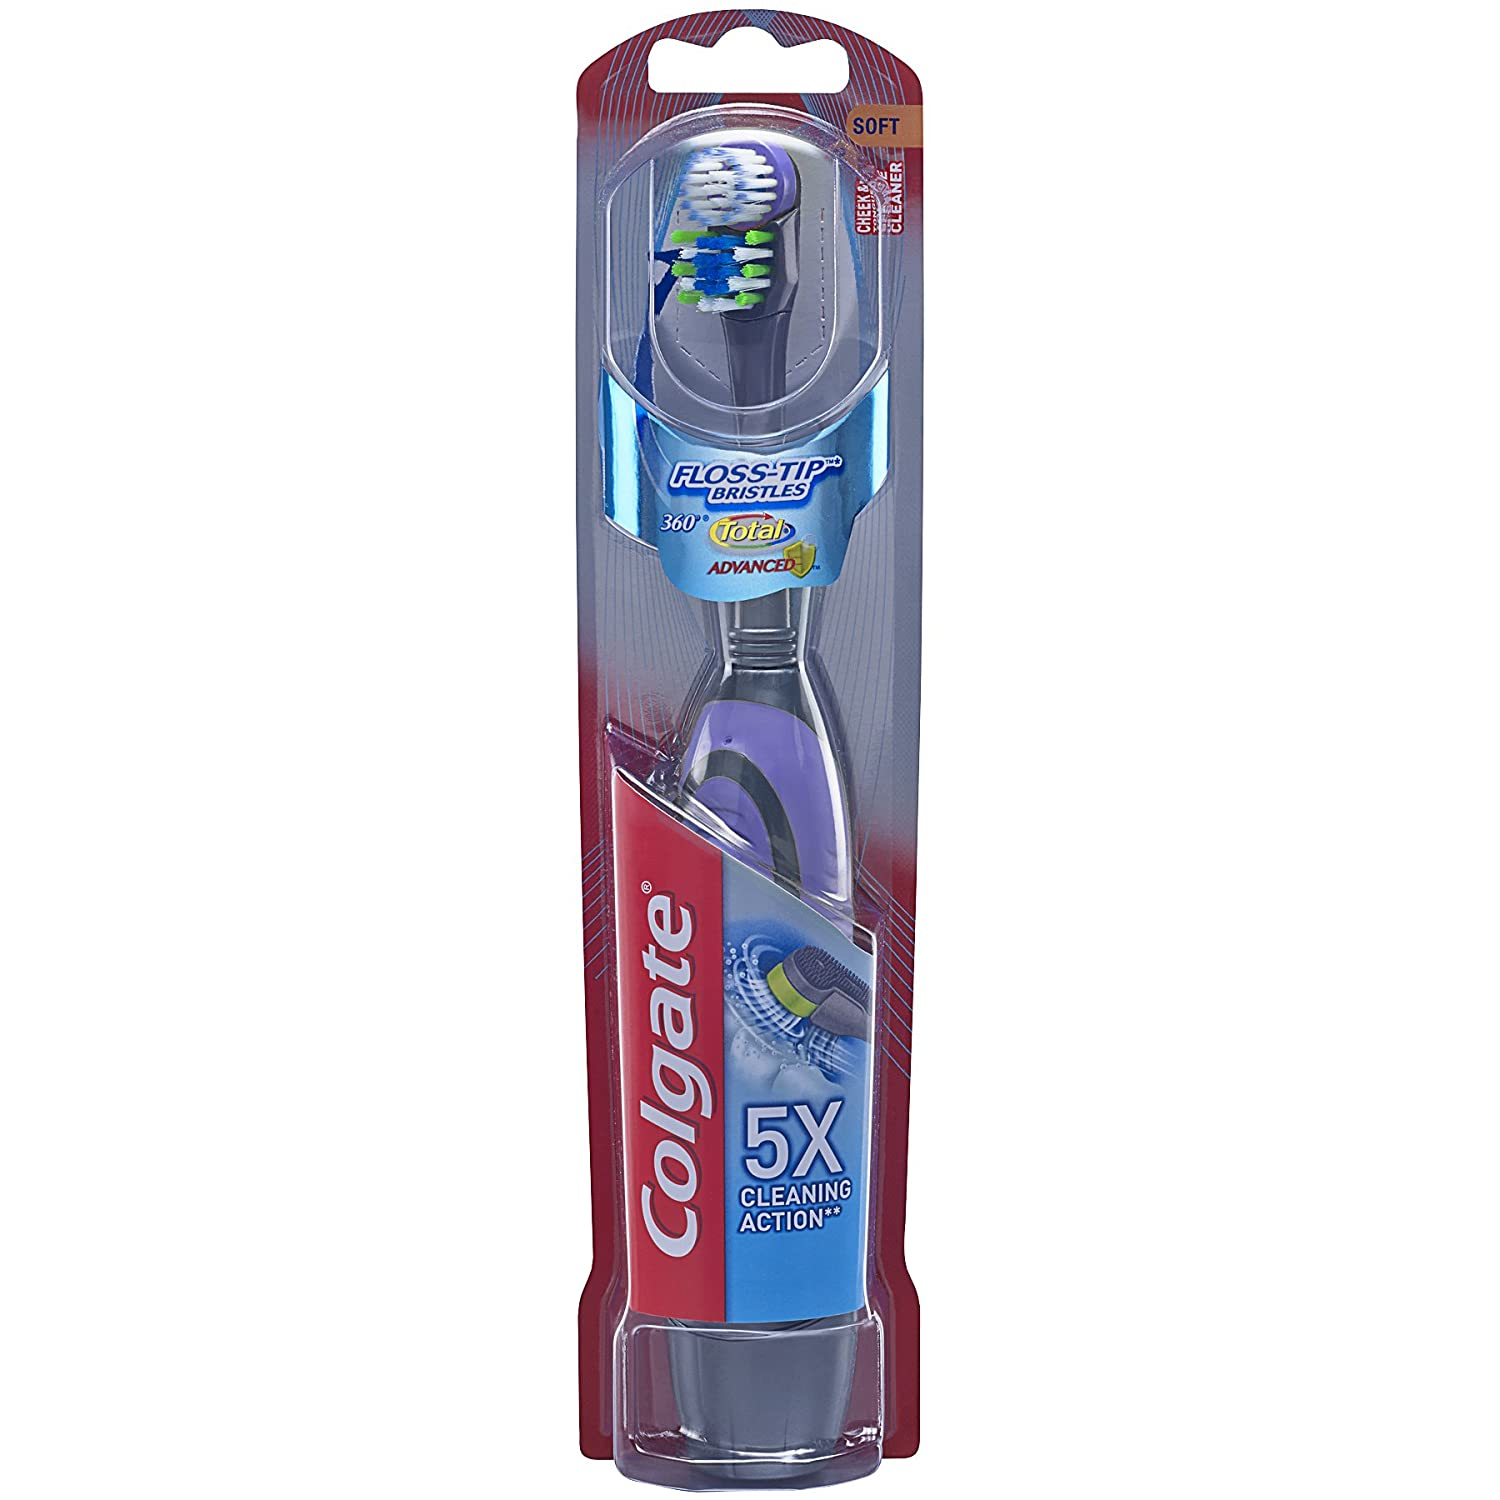 Max 70% OFF Colgate Classic Total Advanced Floss-Tip Toothbrush Battery Powered Sof